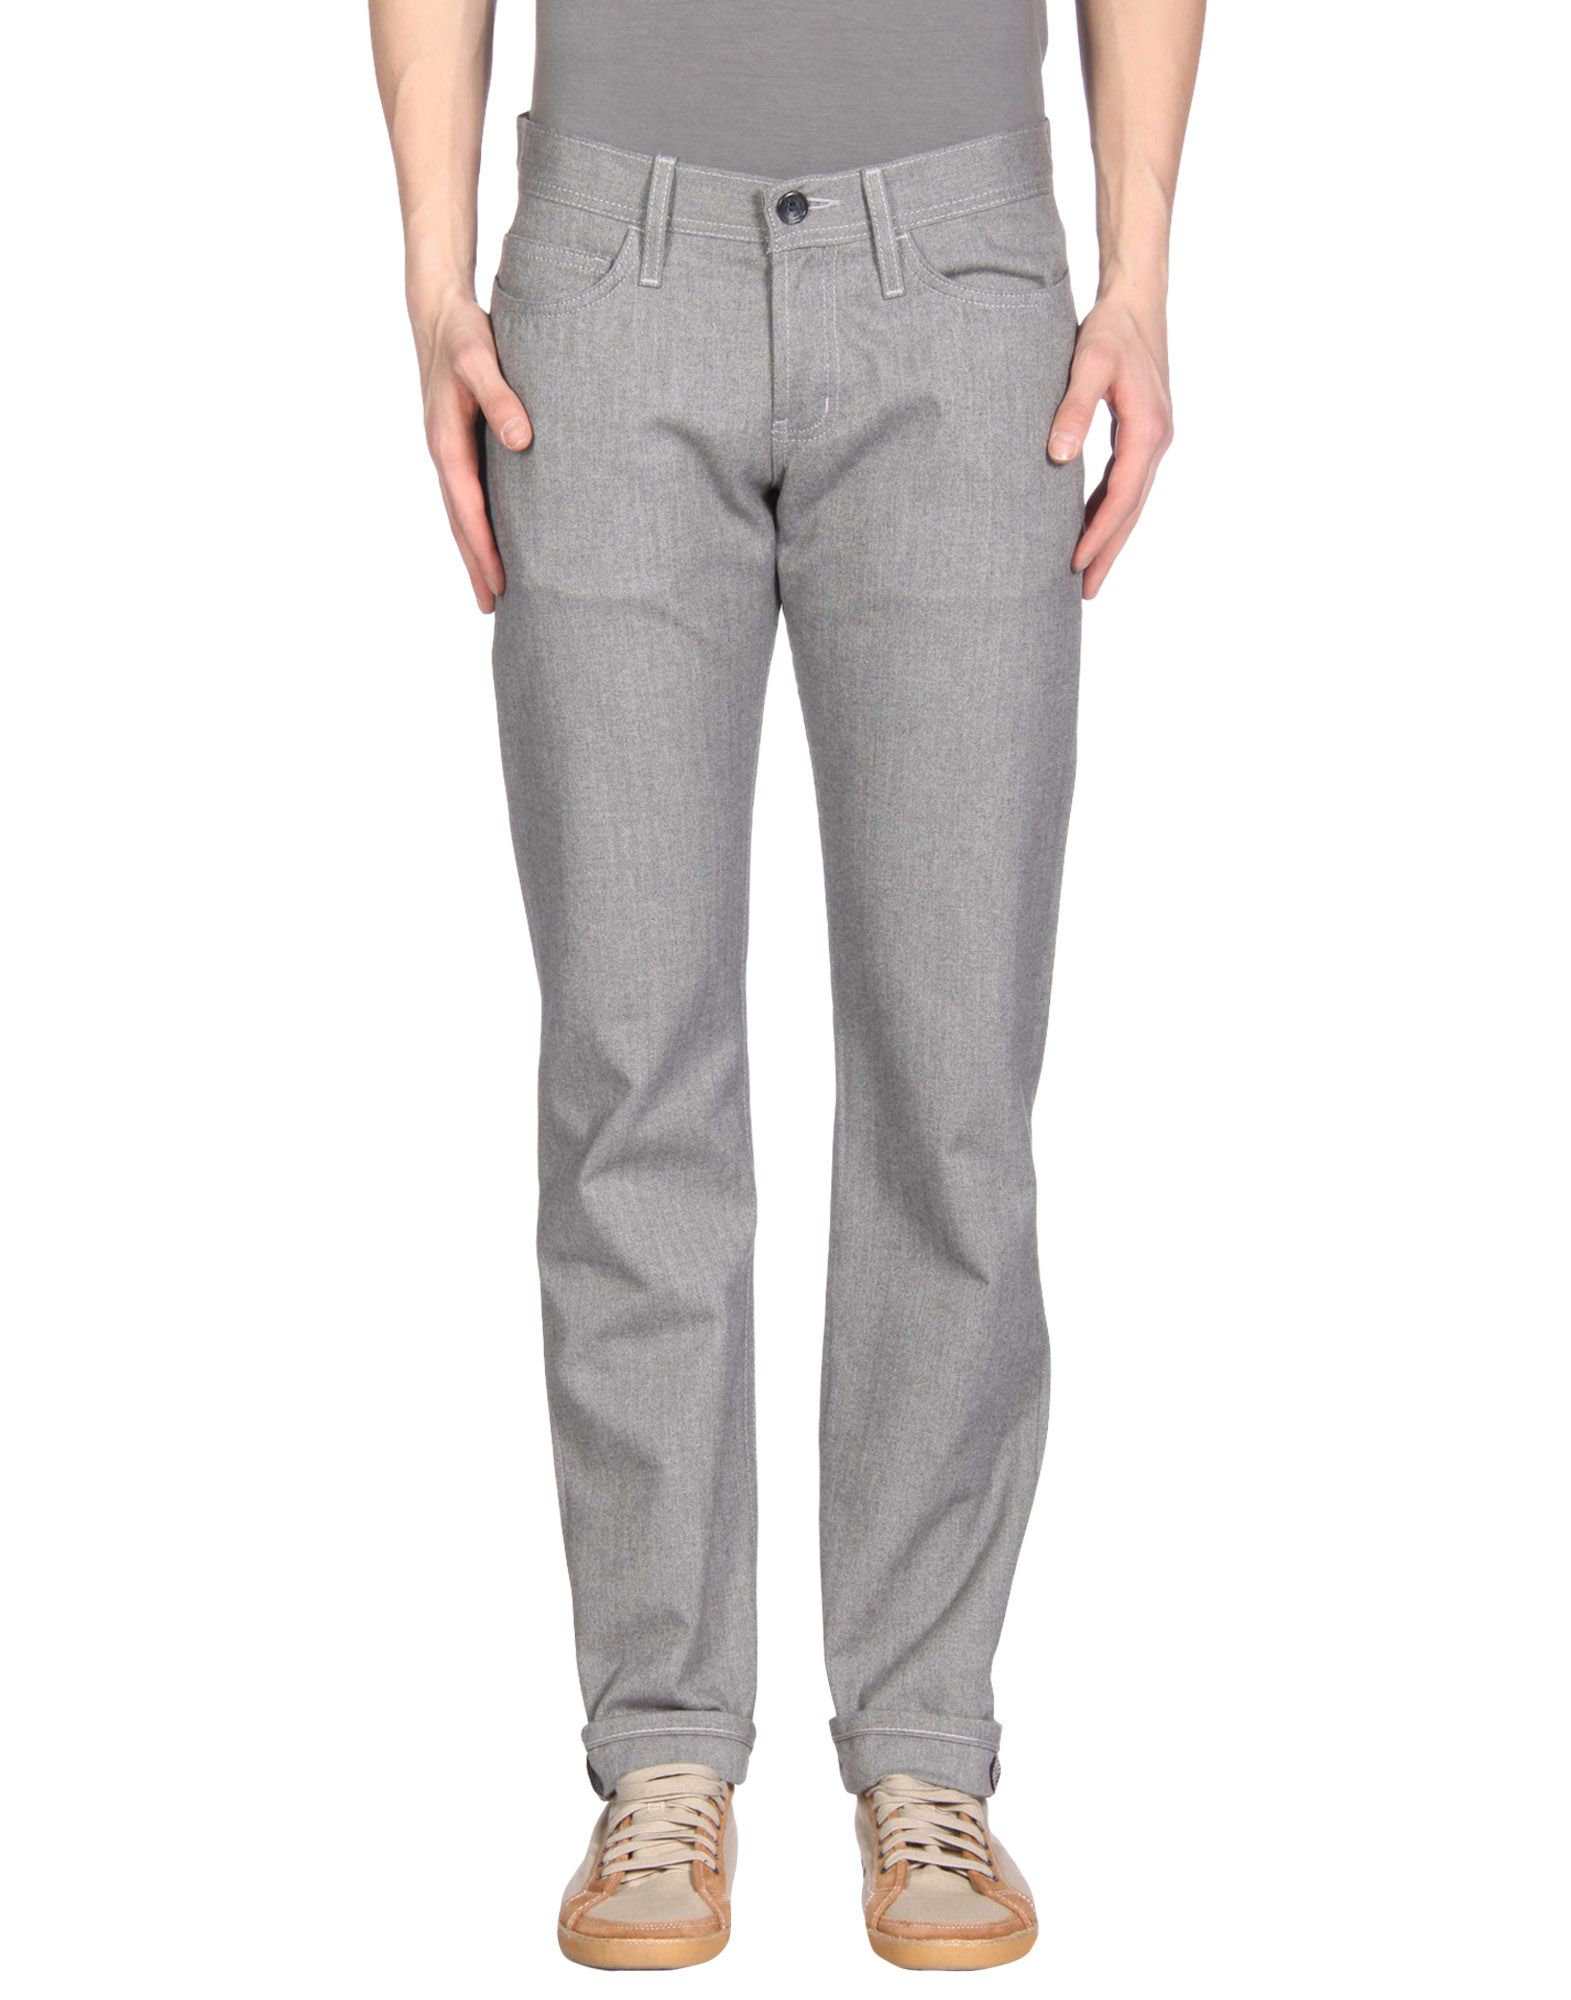 NAKED & FAMOUS Denim Pants in Grey